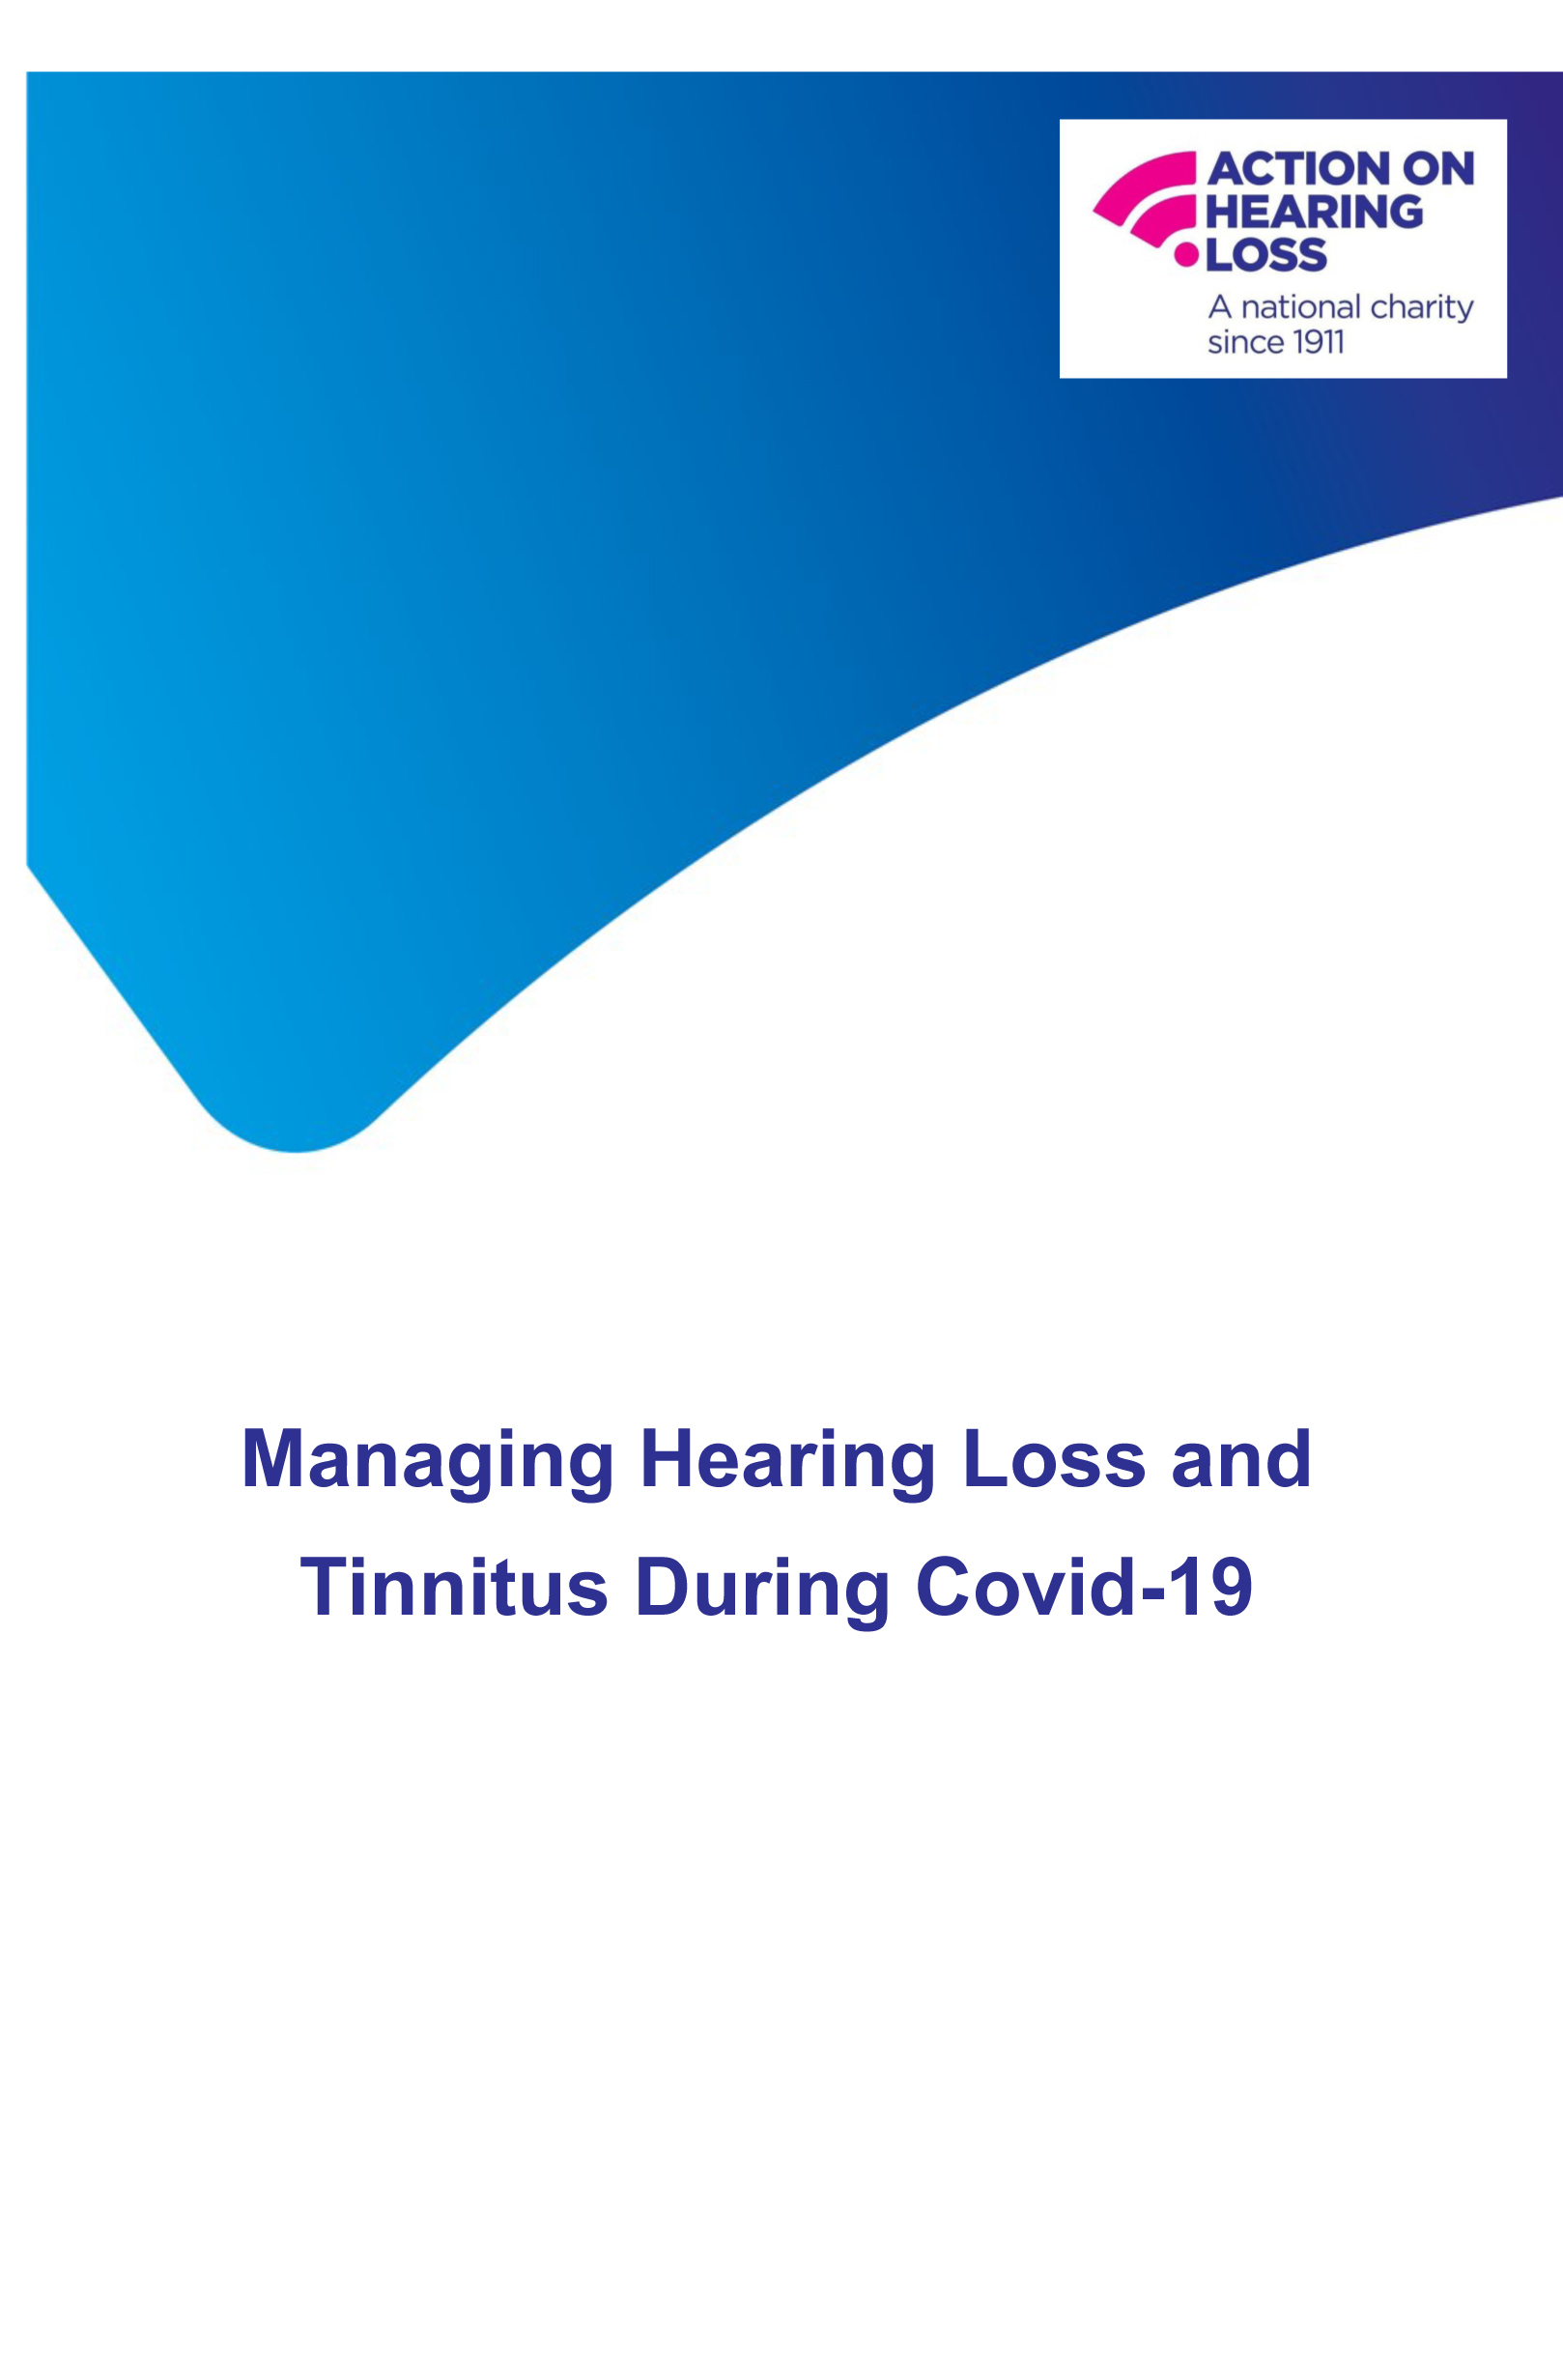 Managing Hearing Loss and Tinnitus During Covid-19-1